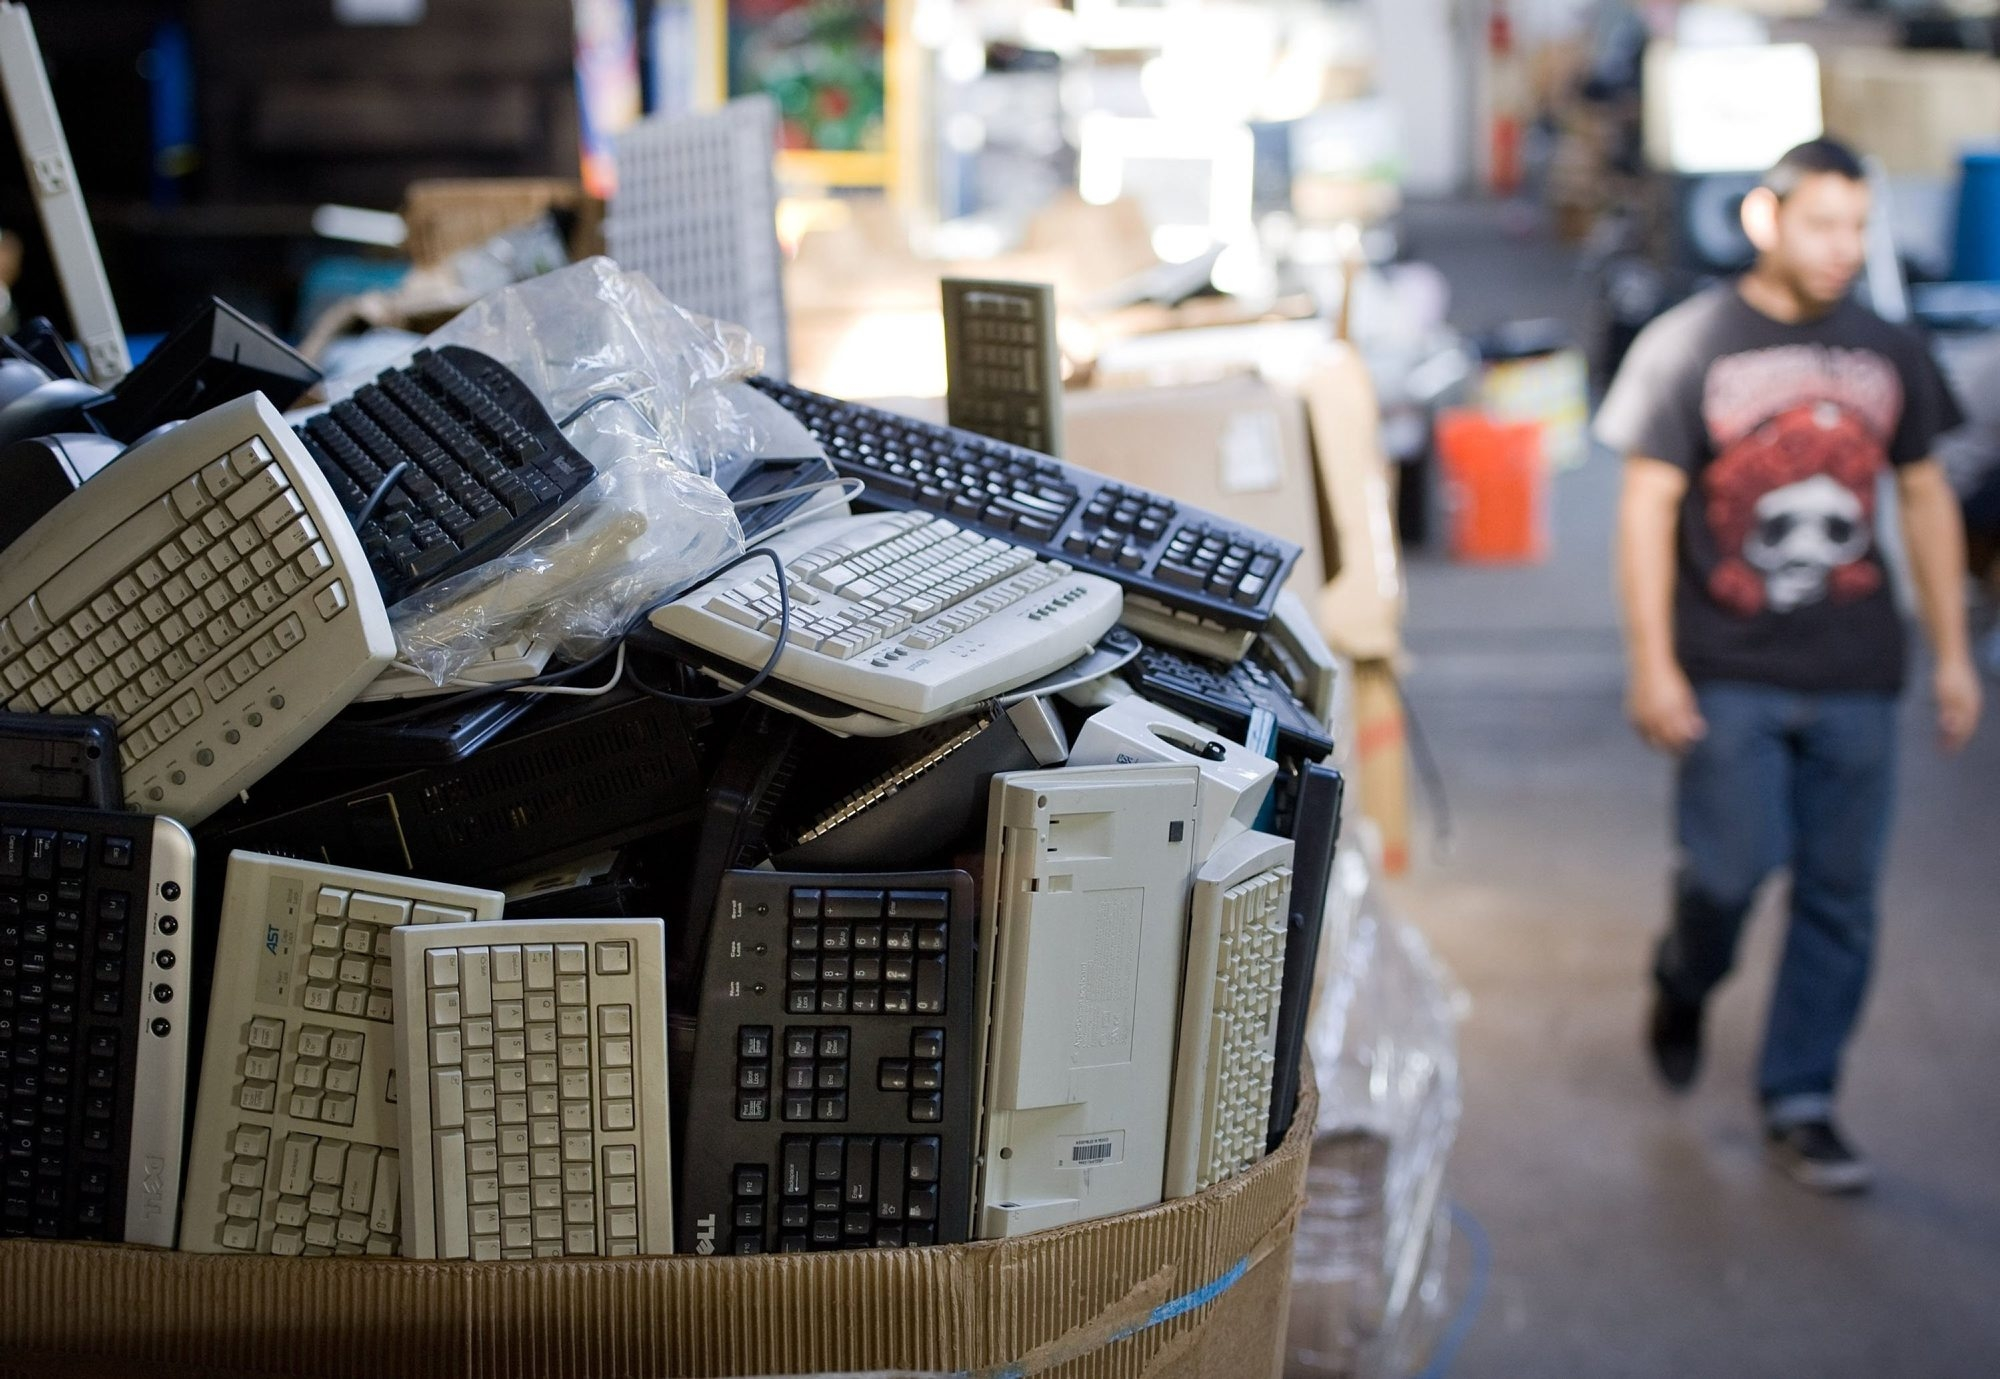 Old computer keyboards fill a box in a business warehouse in Santa Ana, Calif. In California, e-waste is recycled with funds paid by consumers as a fee when they purchase electronics.